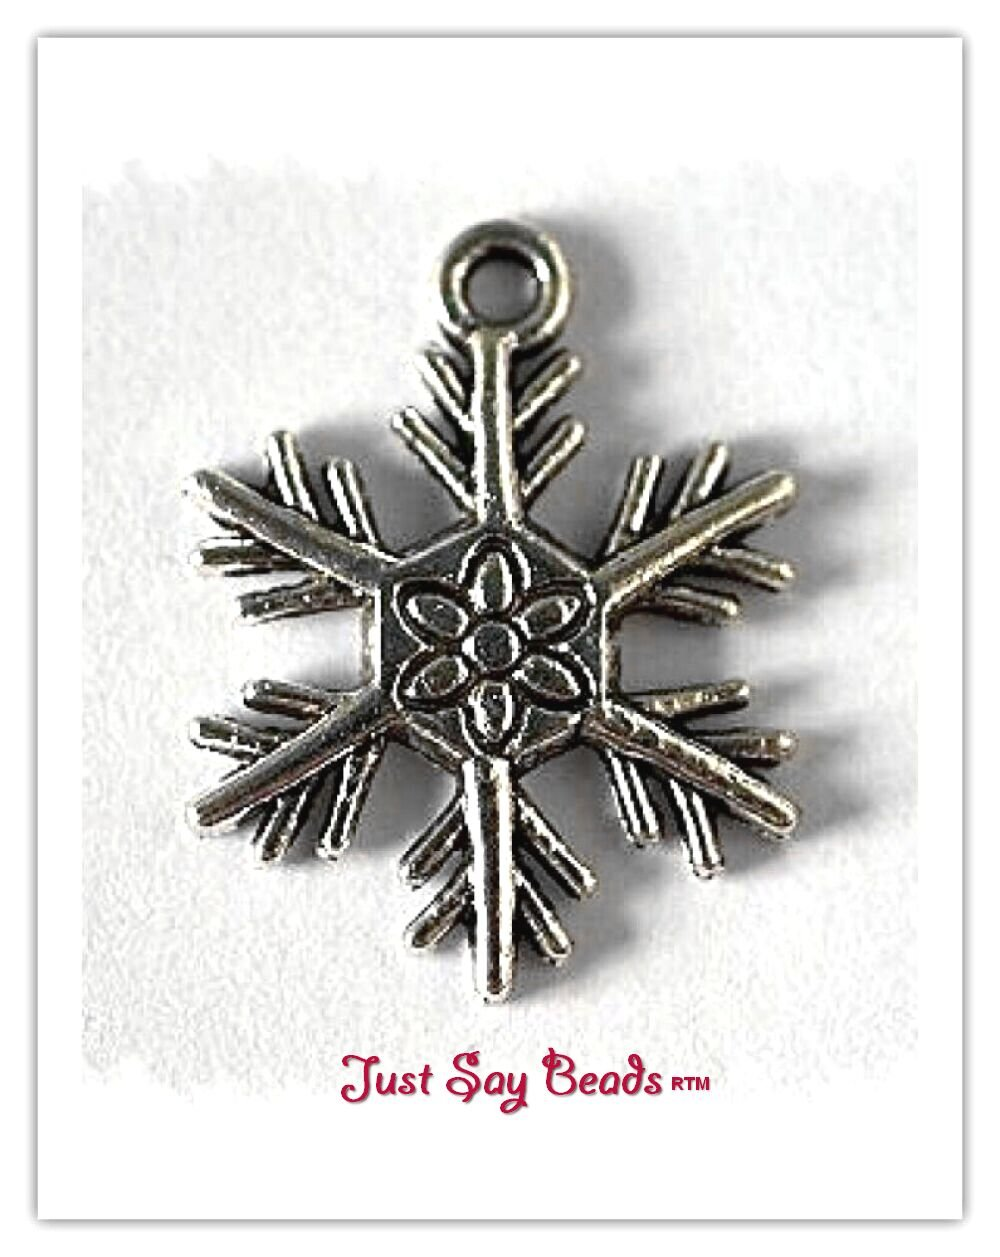 10 x Antique Silver Plated 'SNOWFLAKE' Charms (24mm). Jump rings included for attachments. Universal use for Jewellery, Card Making and Scrap-booking. *High Quality, NICKEL & LEAD FREE Charms* (Ref:10B64W) Just Say Beads